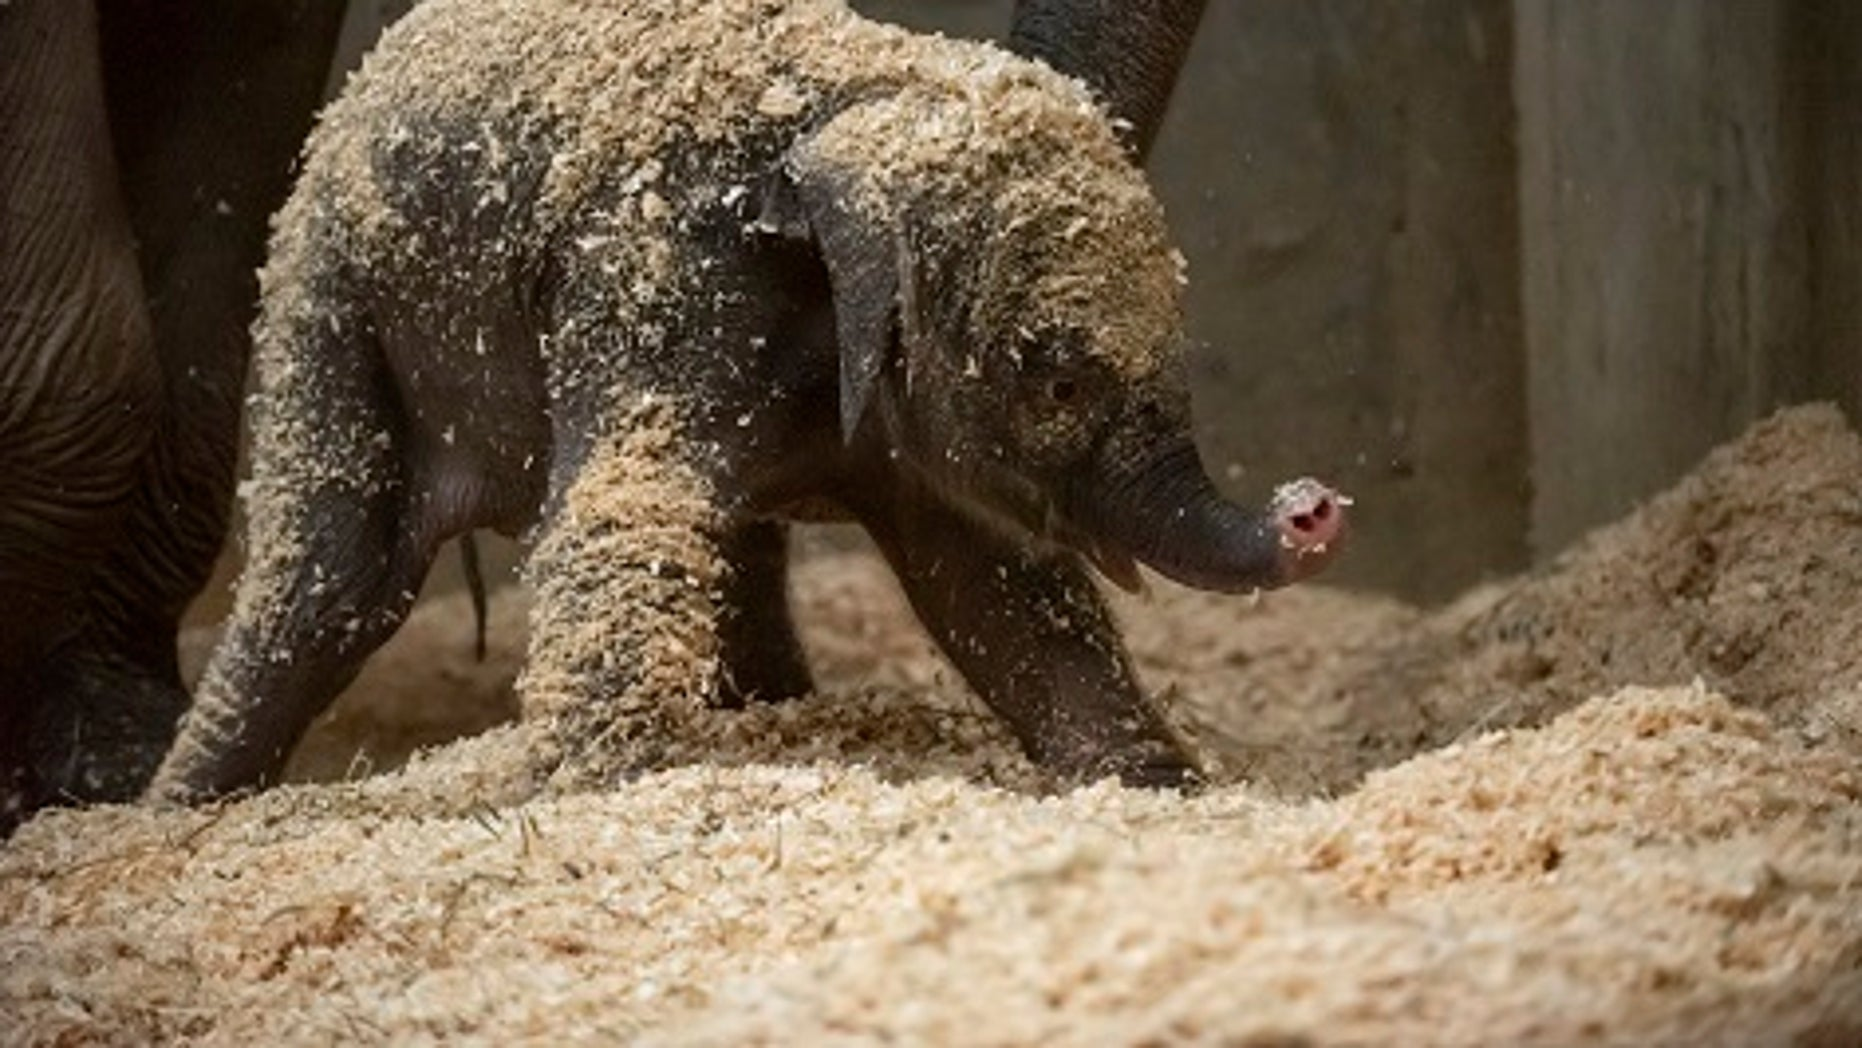 The Asian elephant was born Thursday, Dec. 6, 2018 in Powell, Ohio.